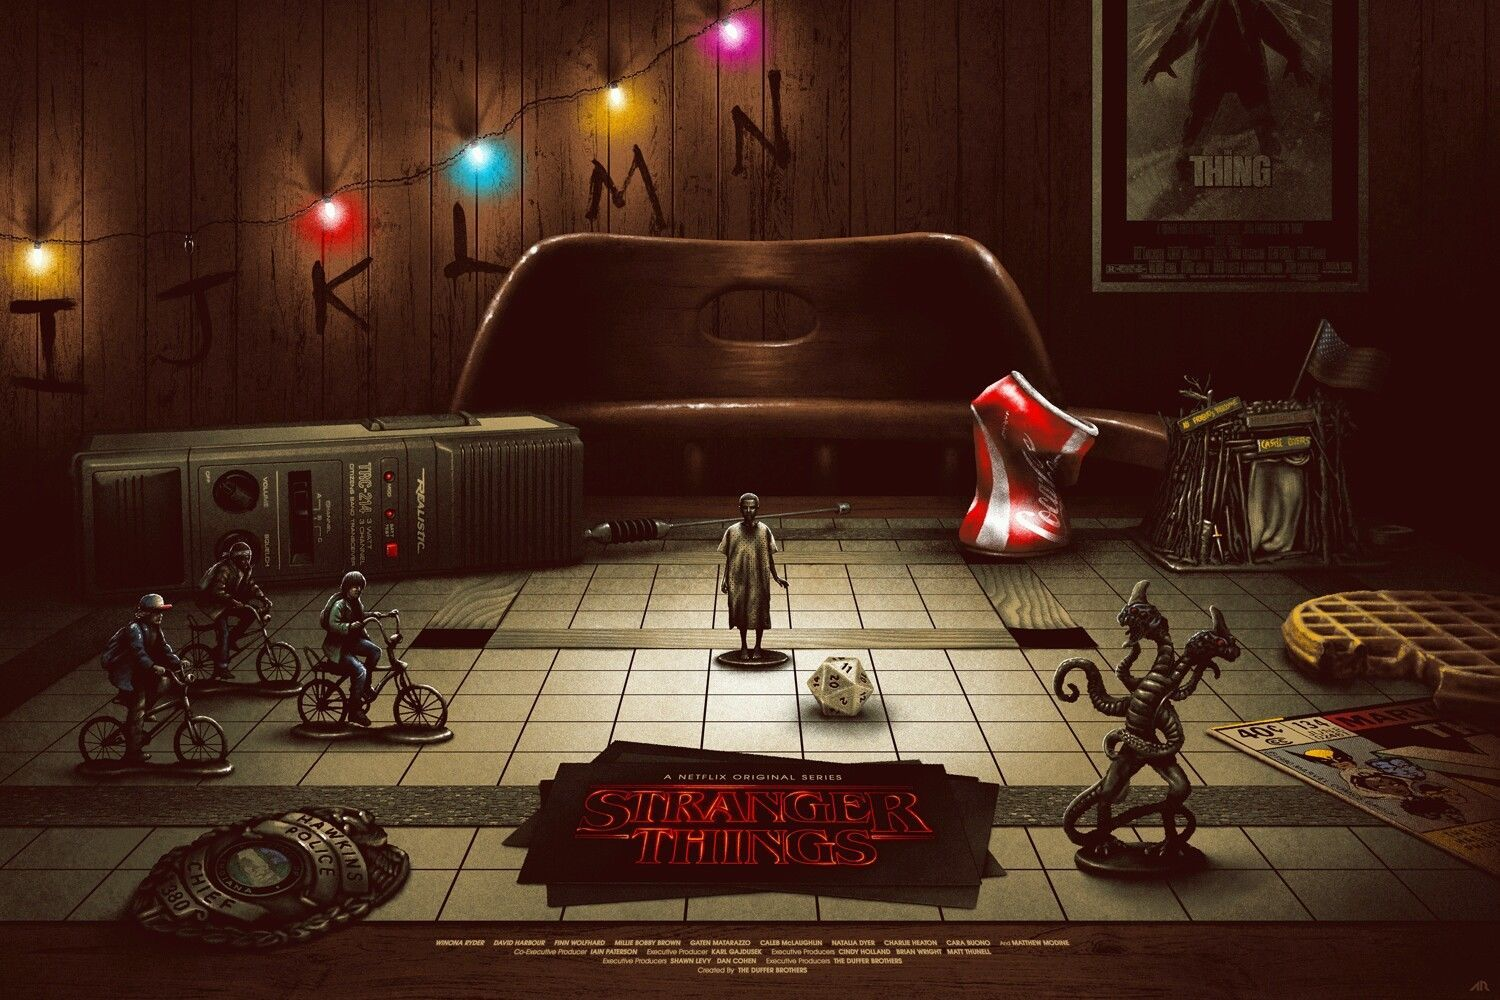 Details About Stranger Things Screen Print Poster By Vance Kelly Not